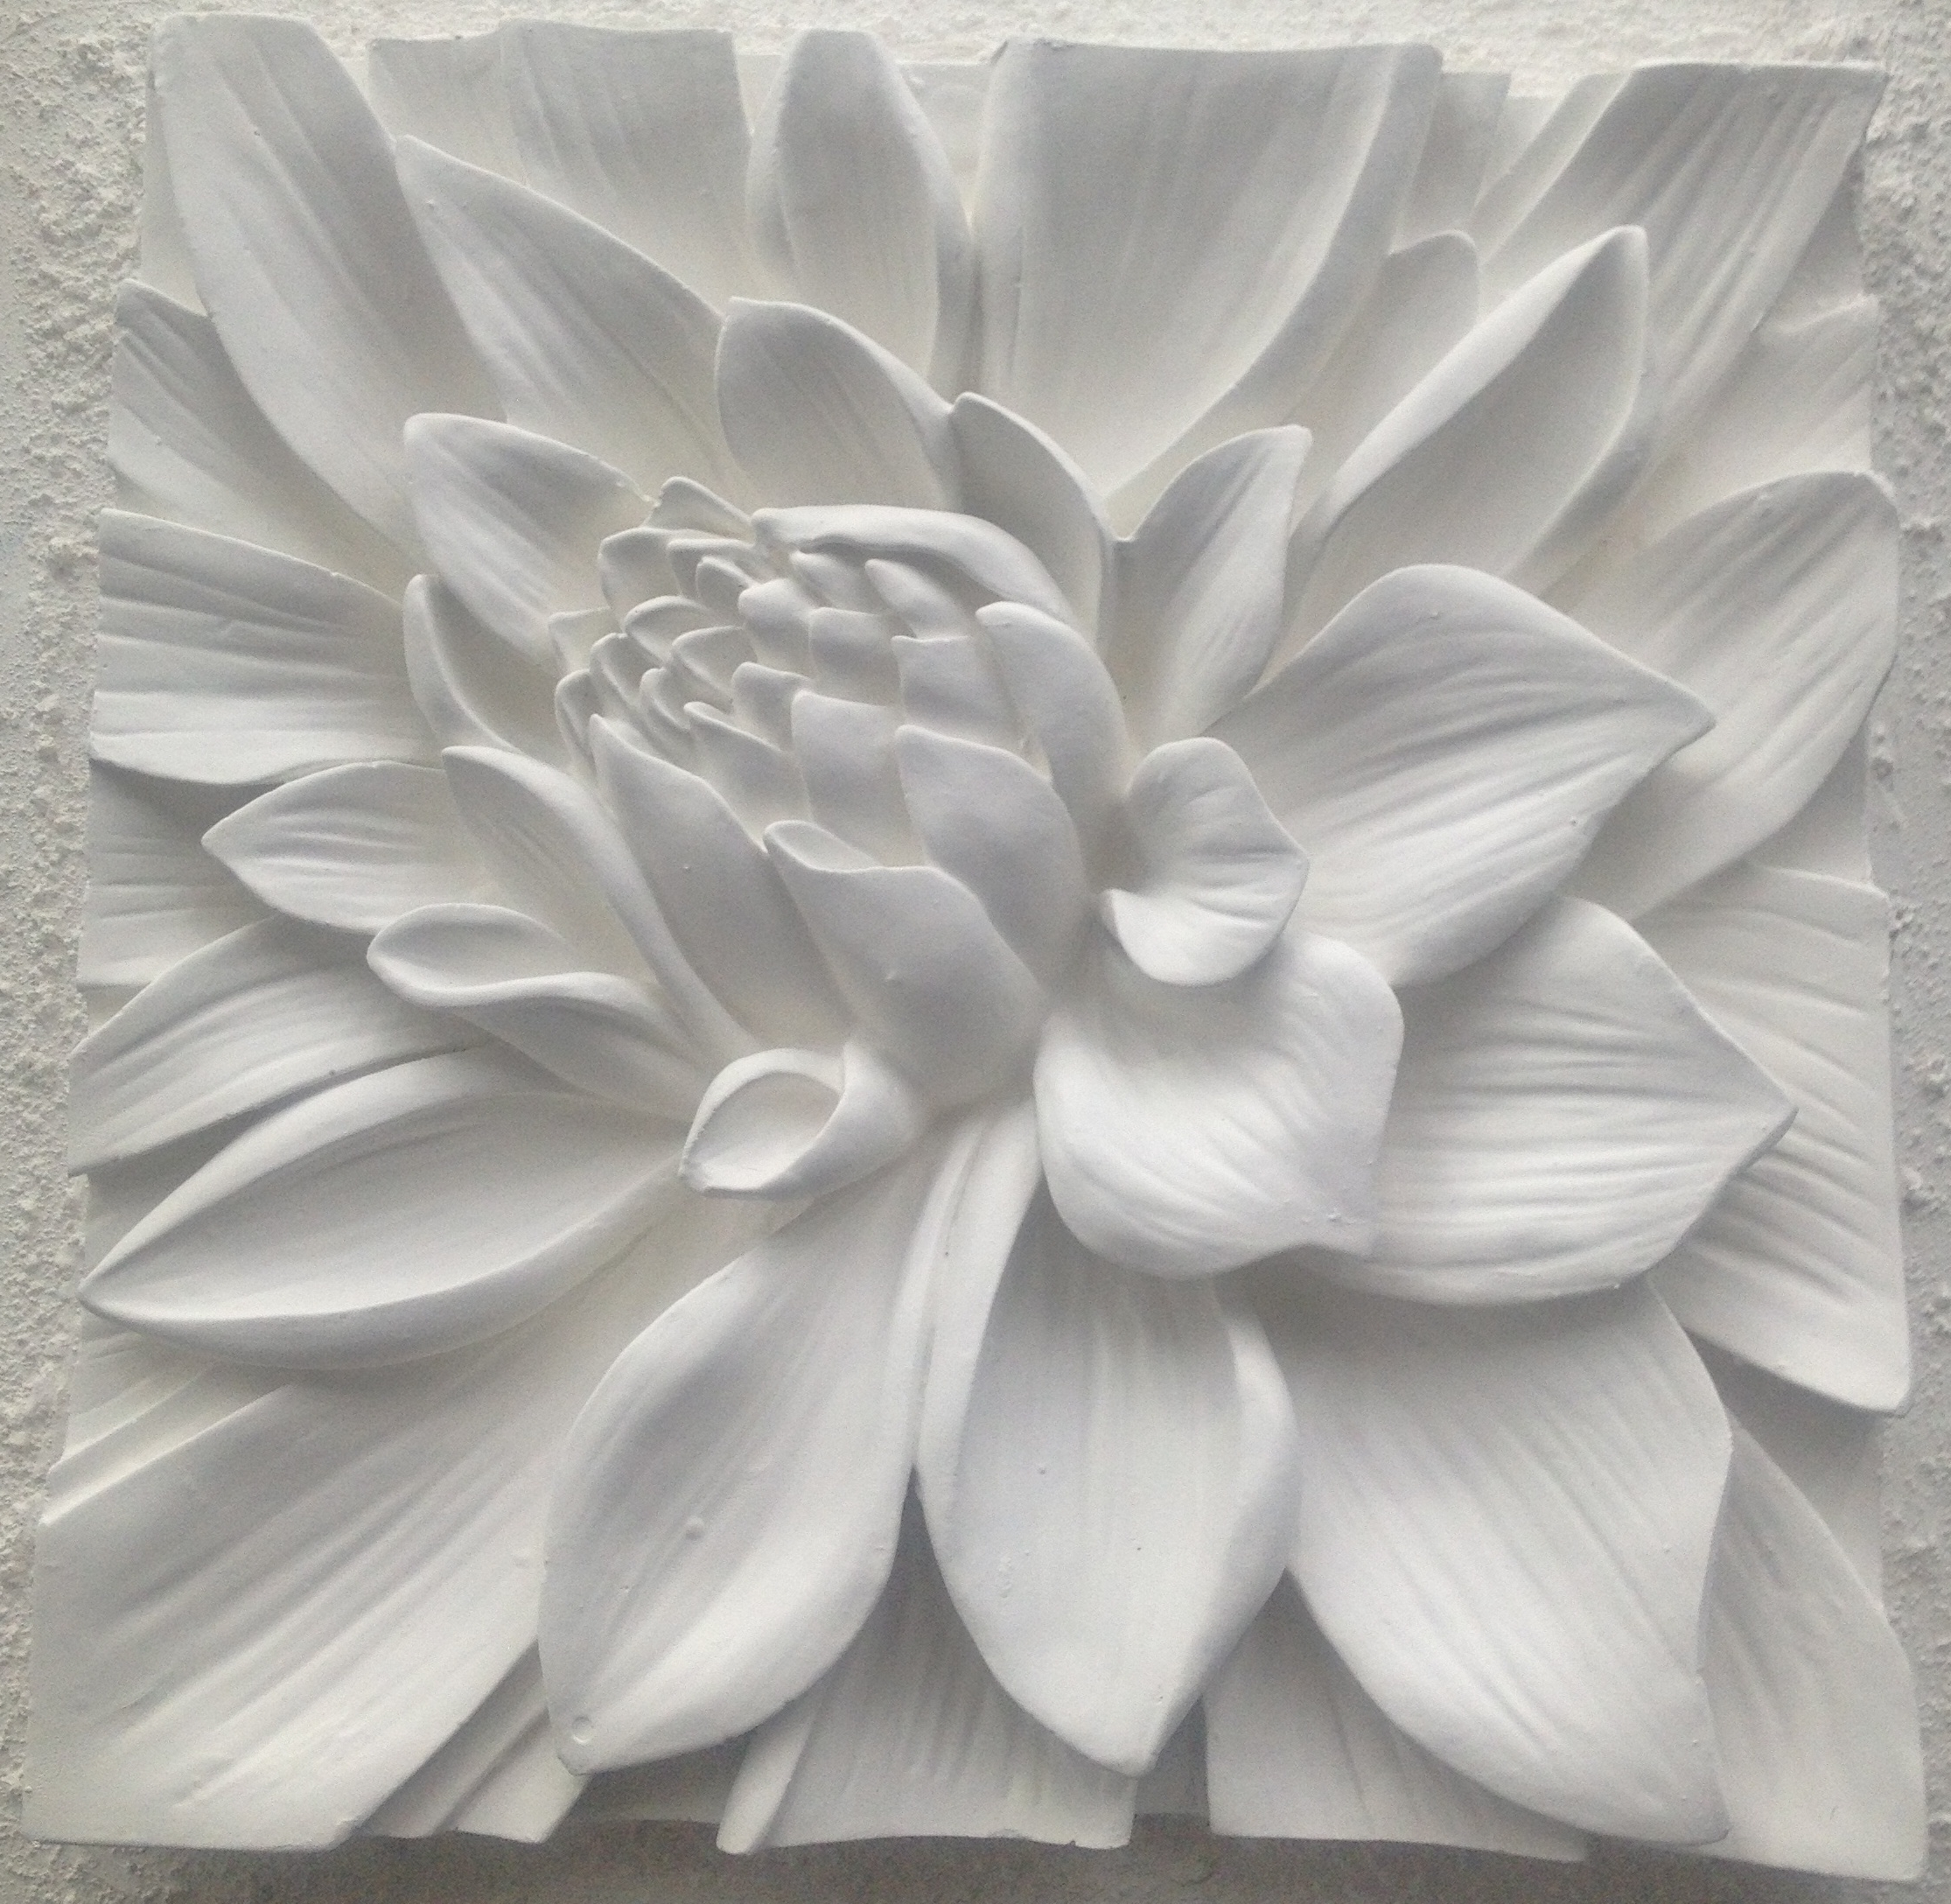 White 3d Wall Art Inside Favorite 3d Flower Wall Art Etsy (View 1 of 15)